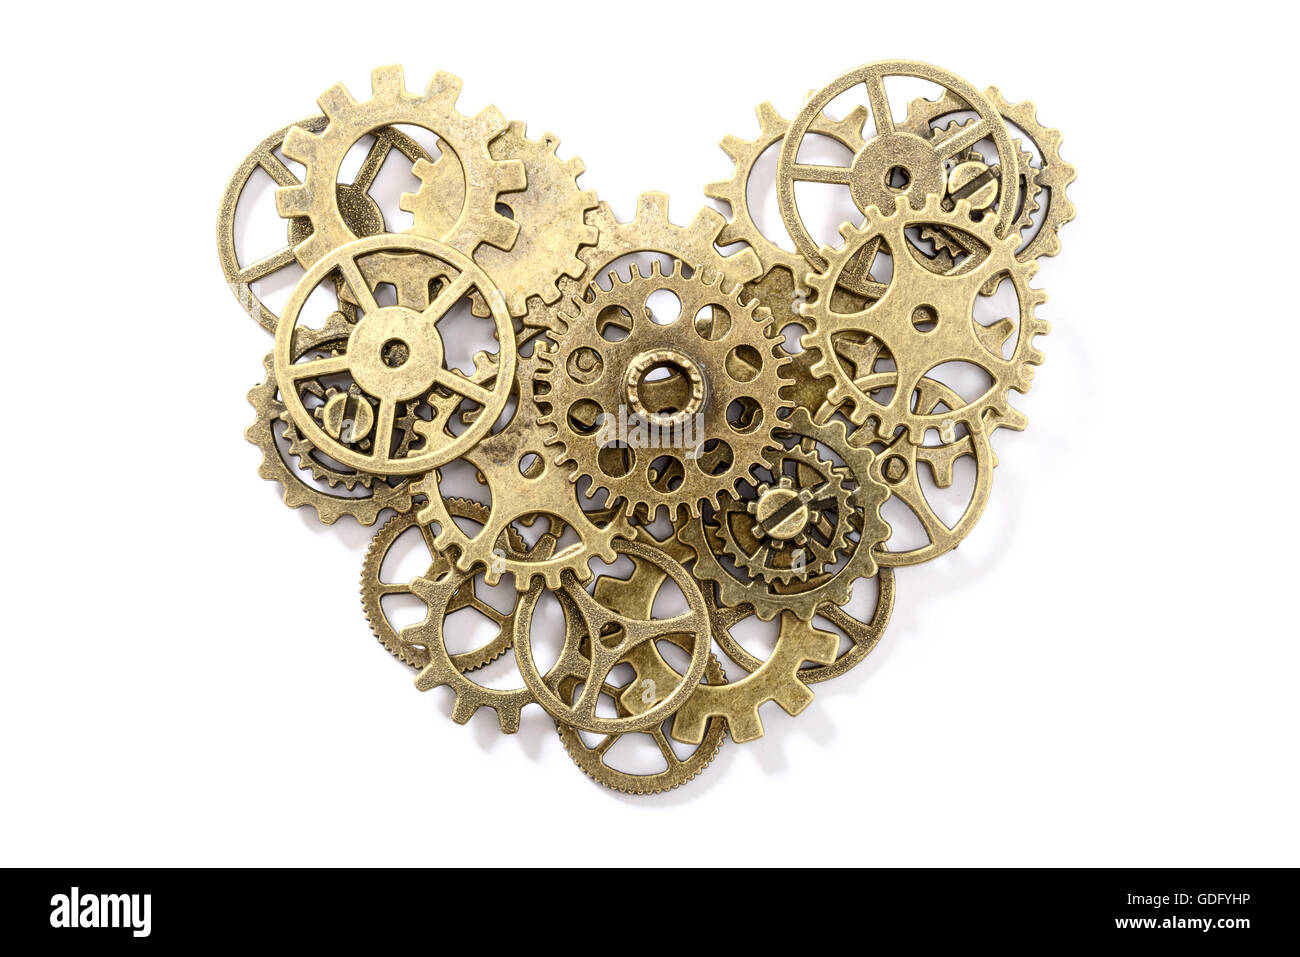 bronze gear heart on white, top view - Stock Image